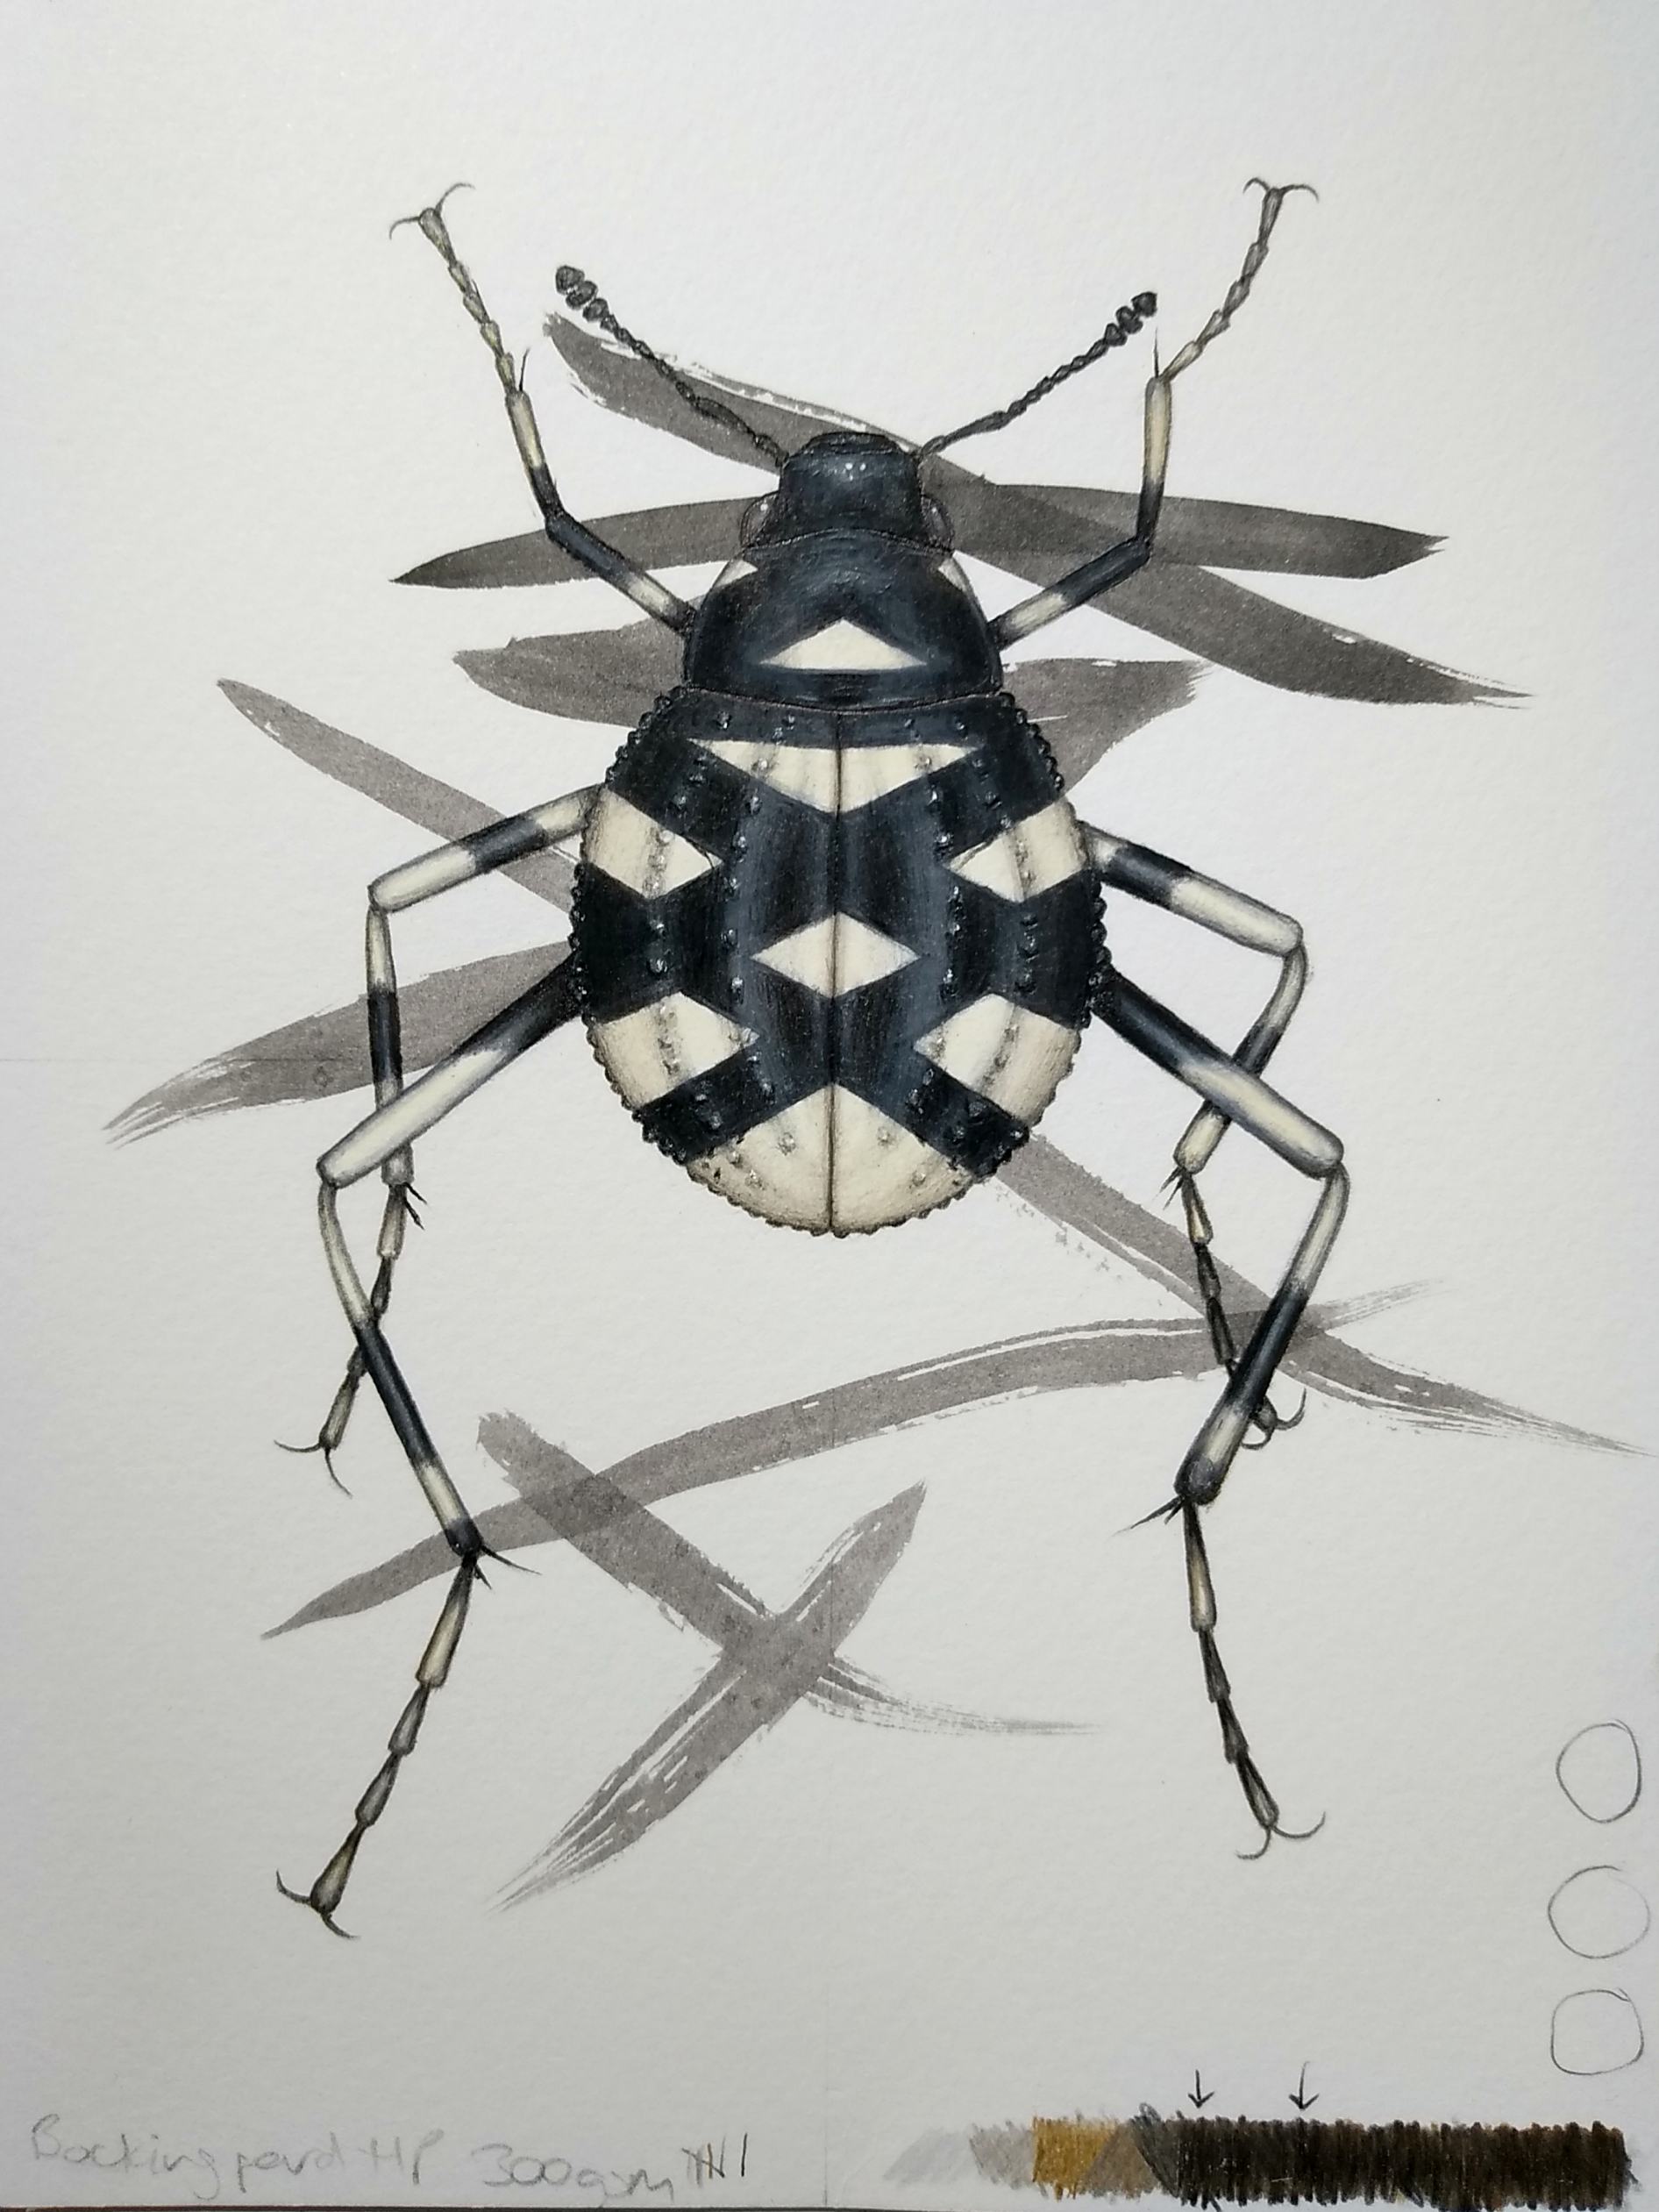 Image description; a drawing of a black and white beetle being made over a page of abstract ink scribbles